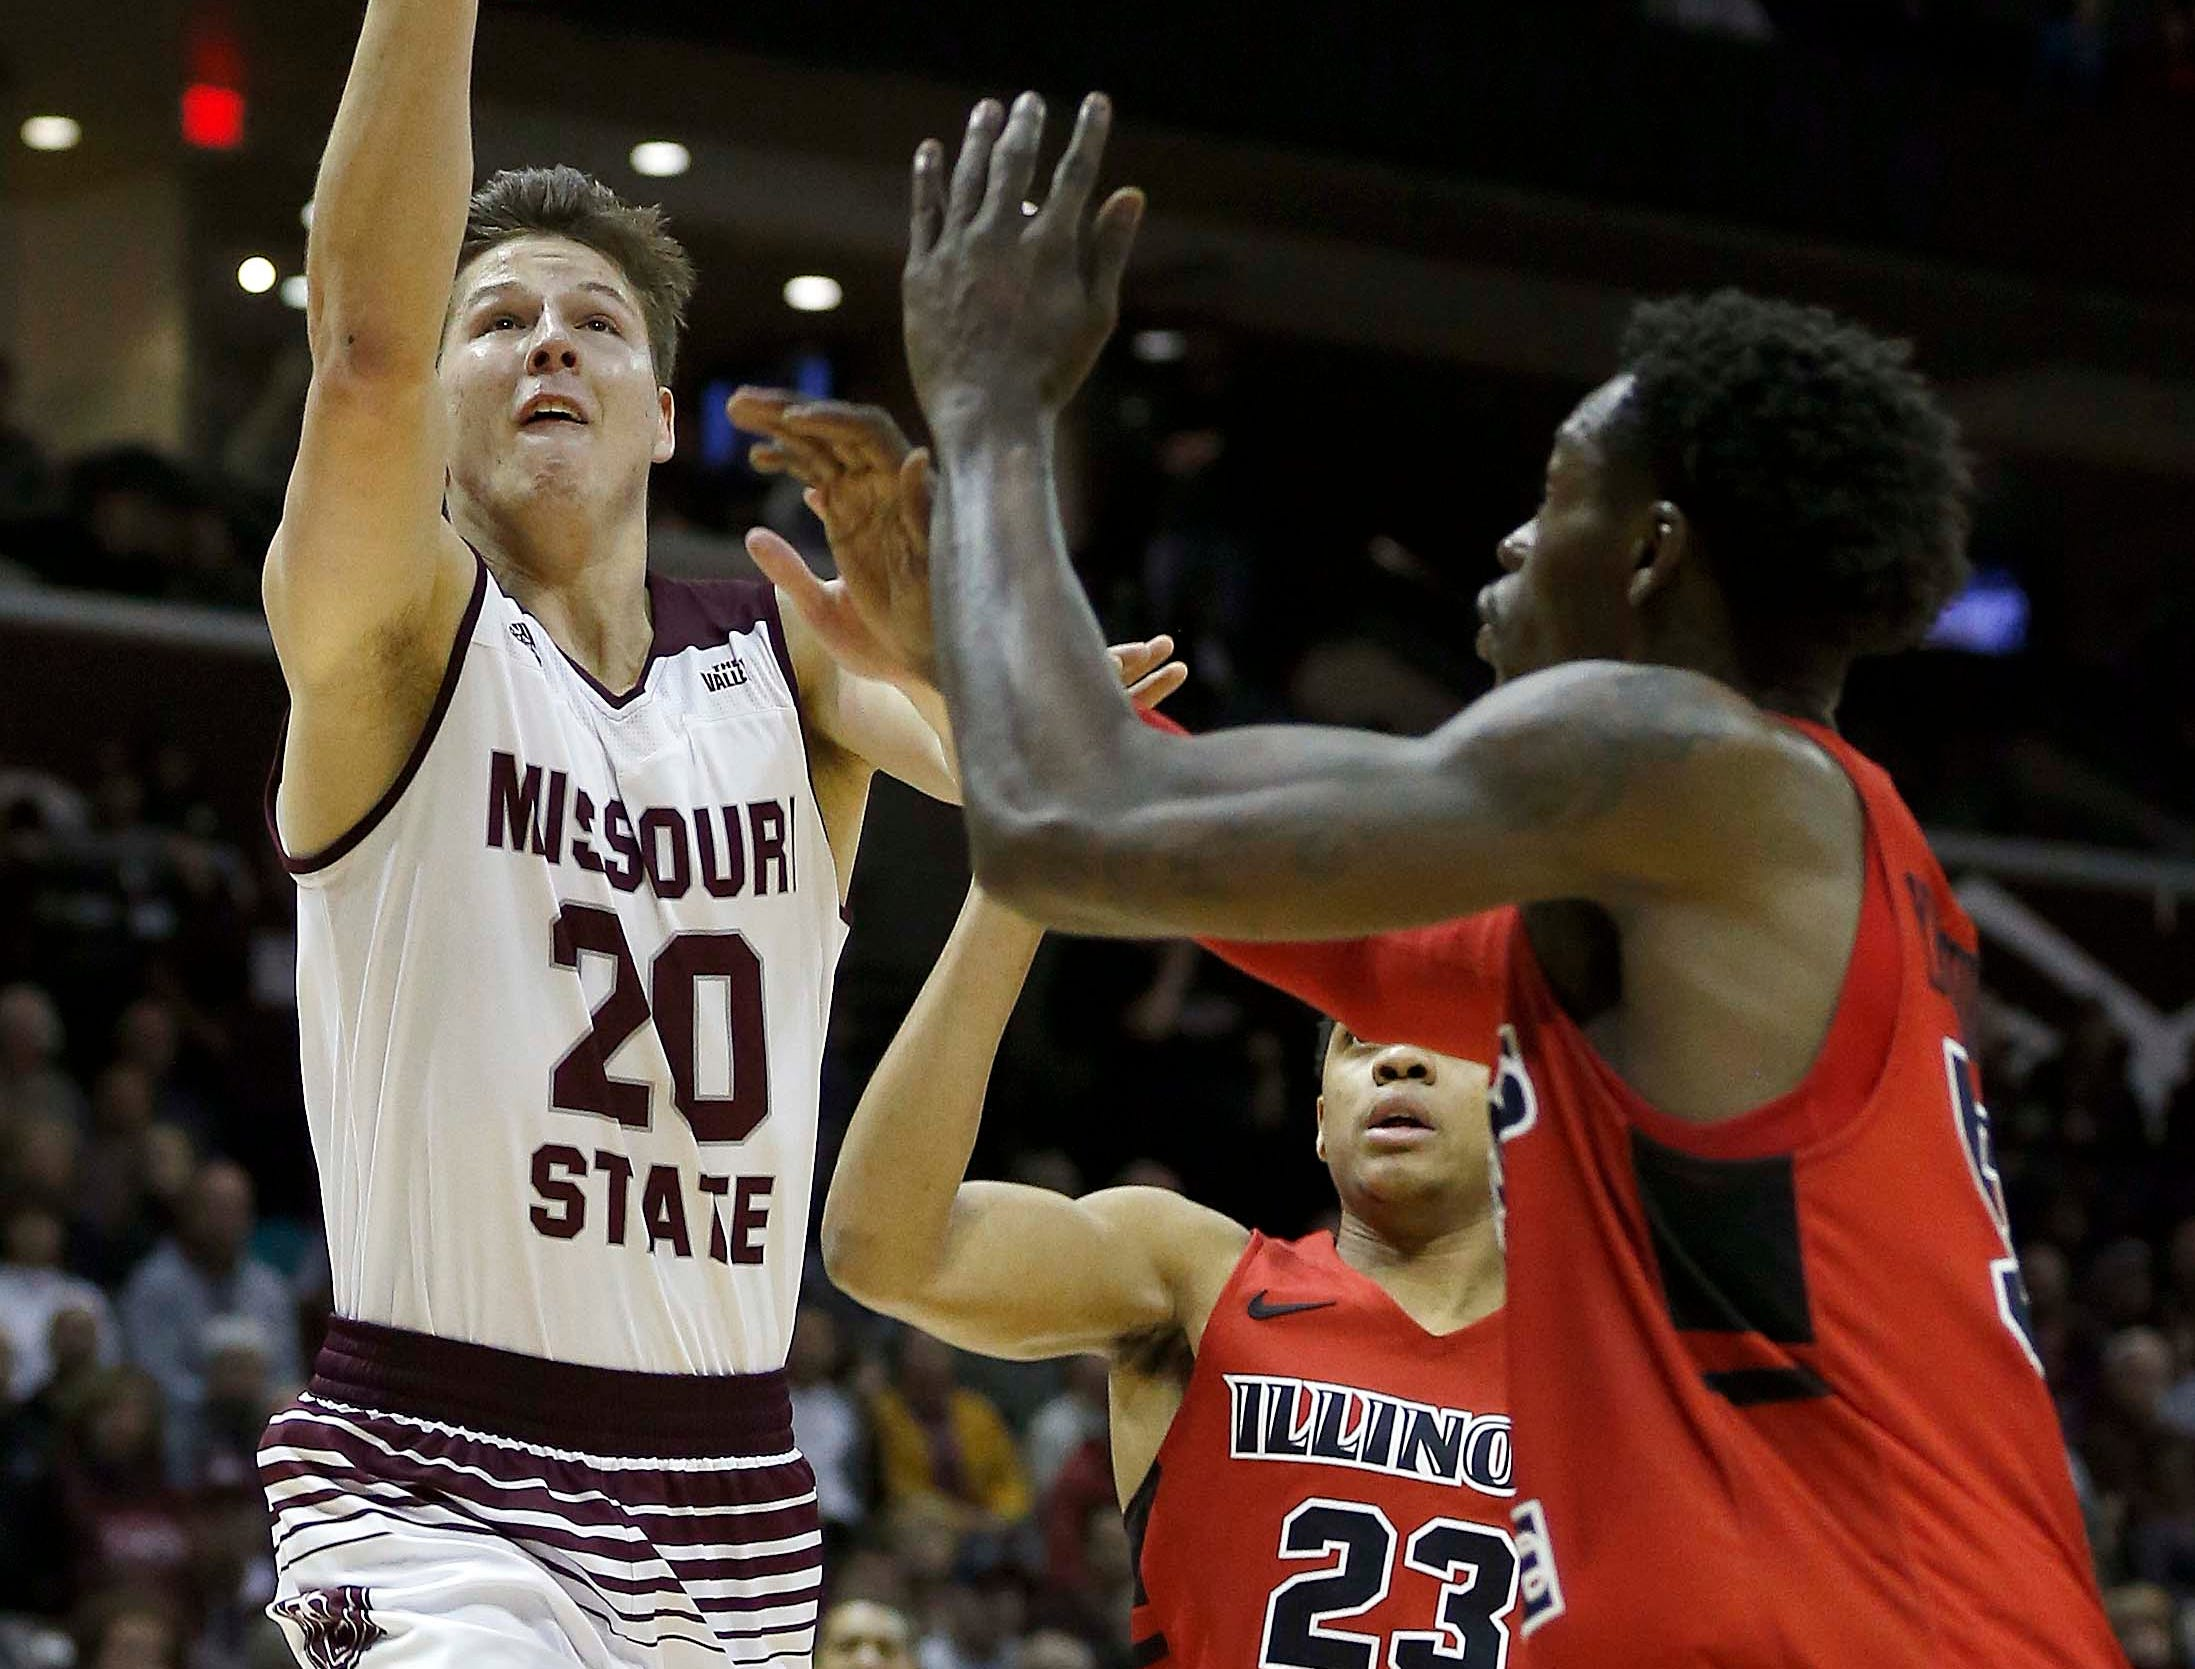 Missouri State's Ryan Kreklow shoots against the Illinois State Redbirds at JQH Arena in Springfield on Feb. 10, 2019.